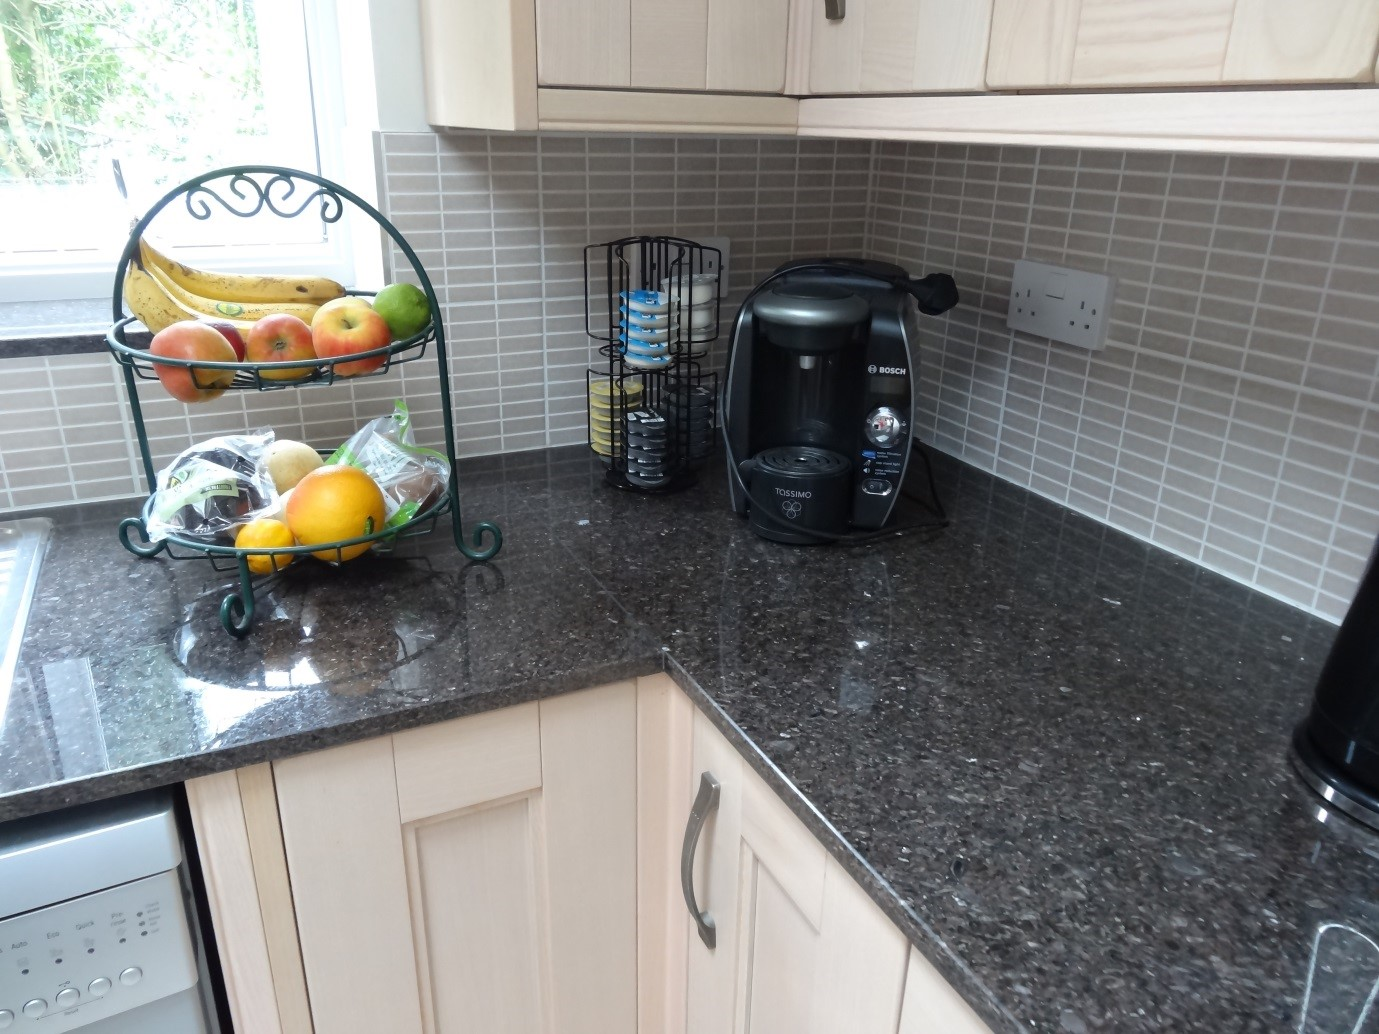 How To Repair A Chip In Granite Countertop Affordable Granite And Quartz Kitchen Worktops Warrington